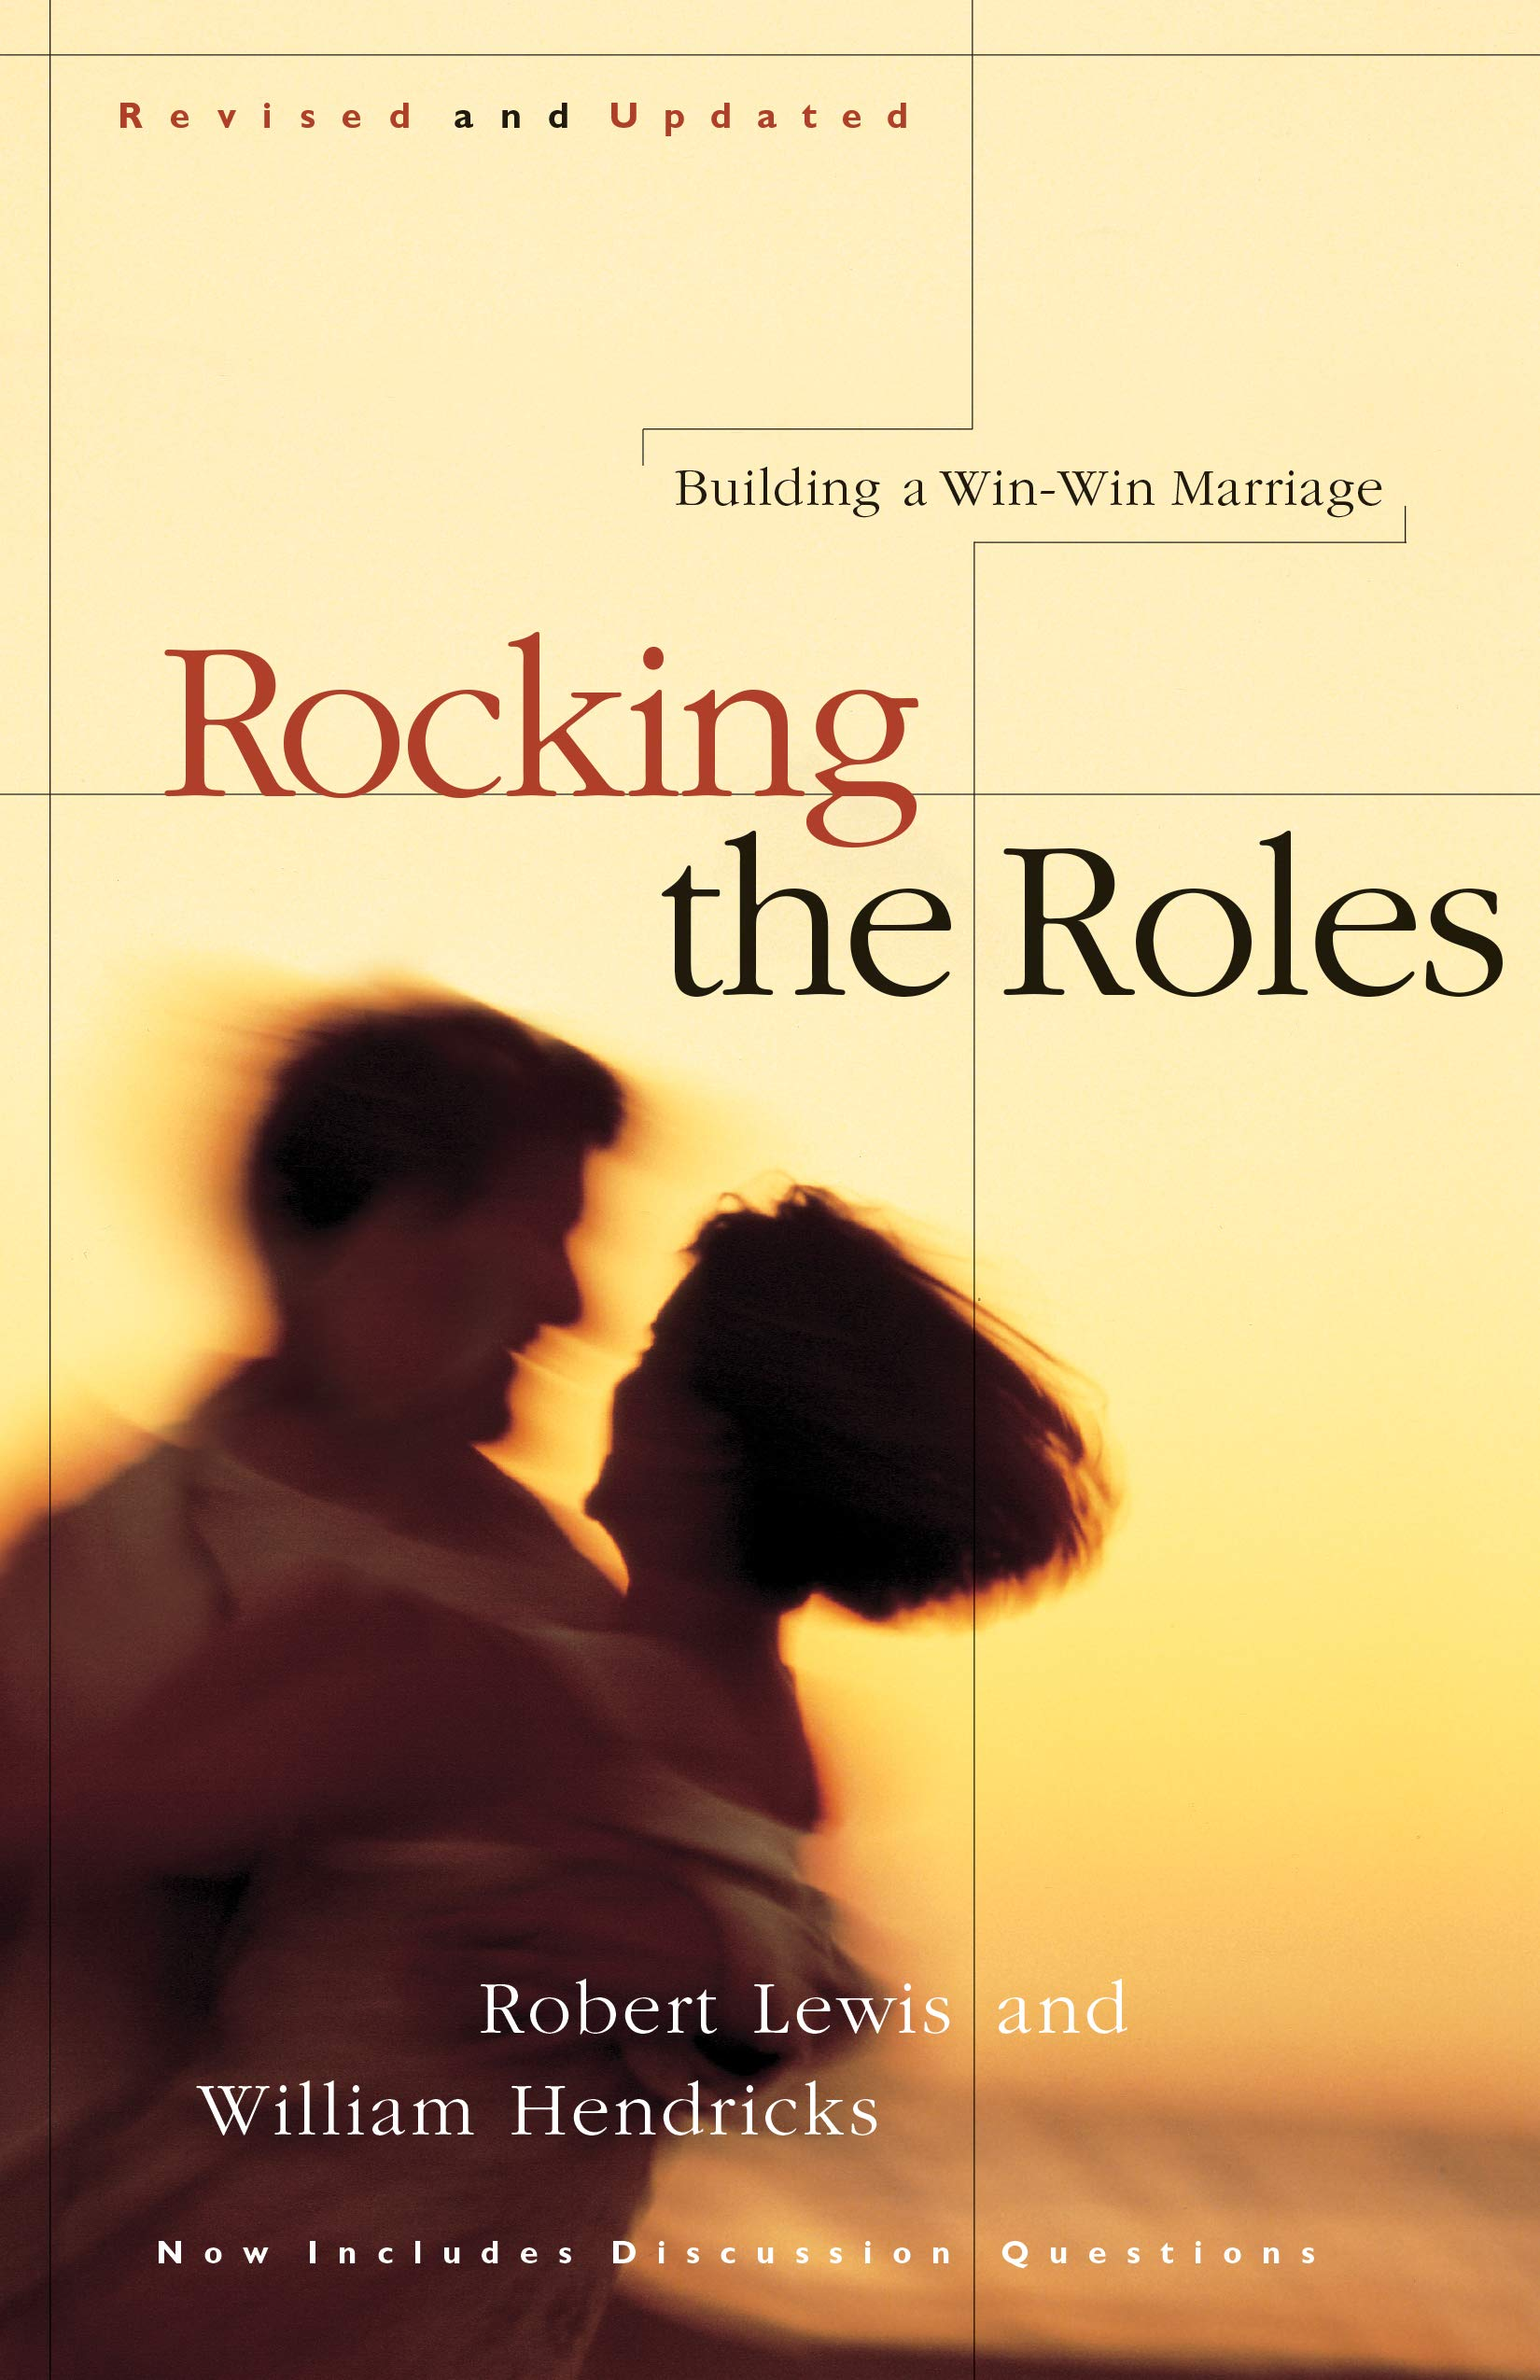 Rights and duties of spouses as a tool for balanced relations